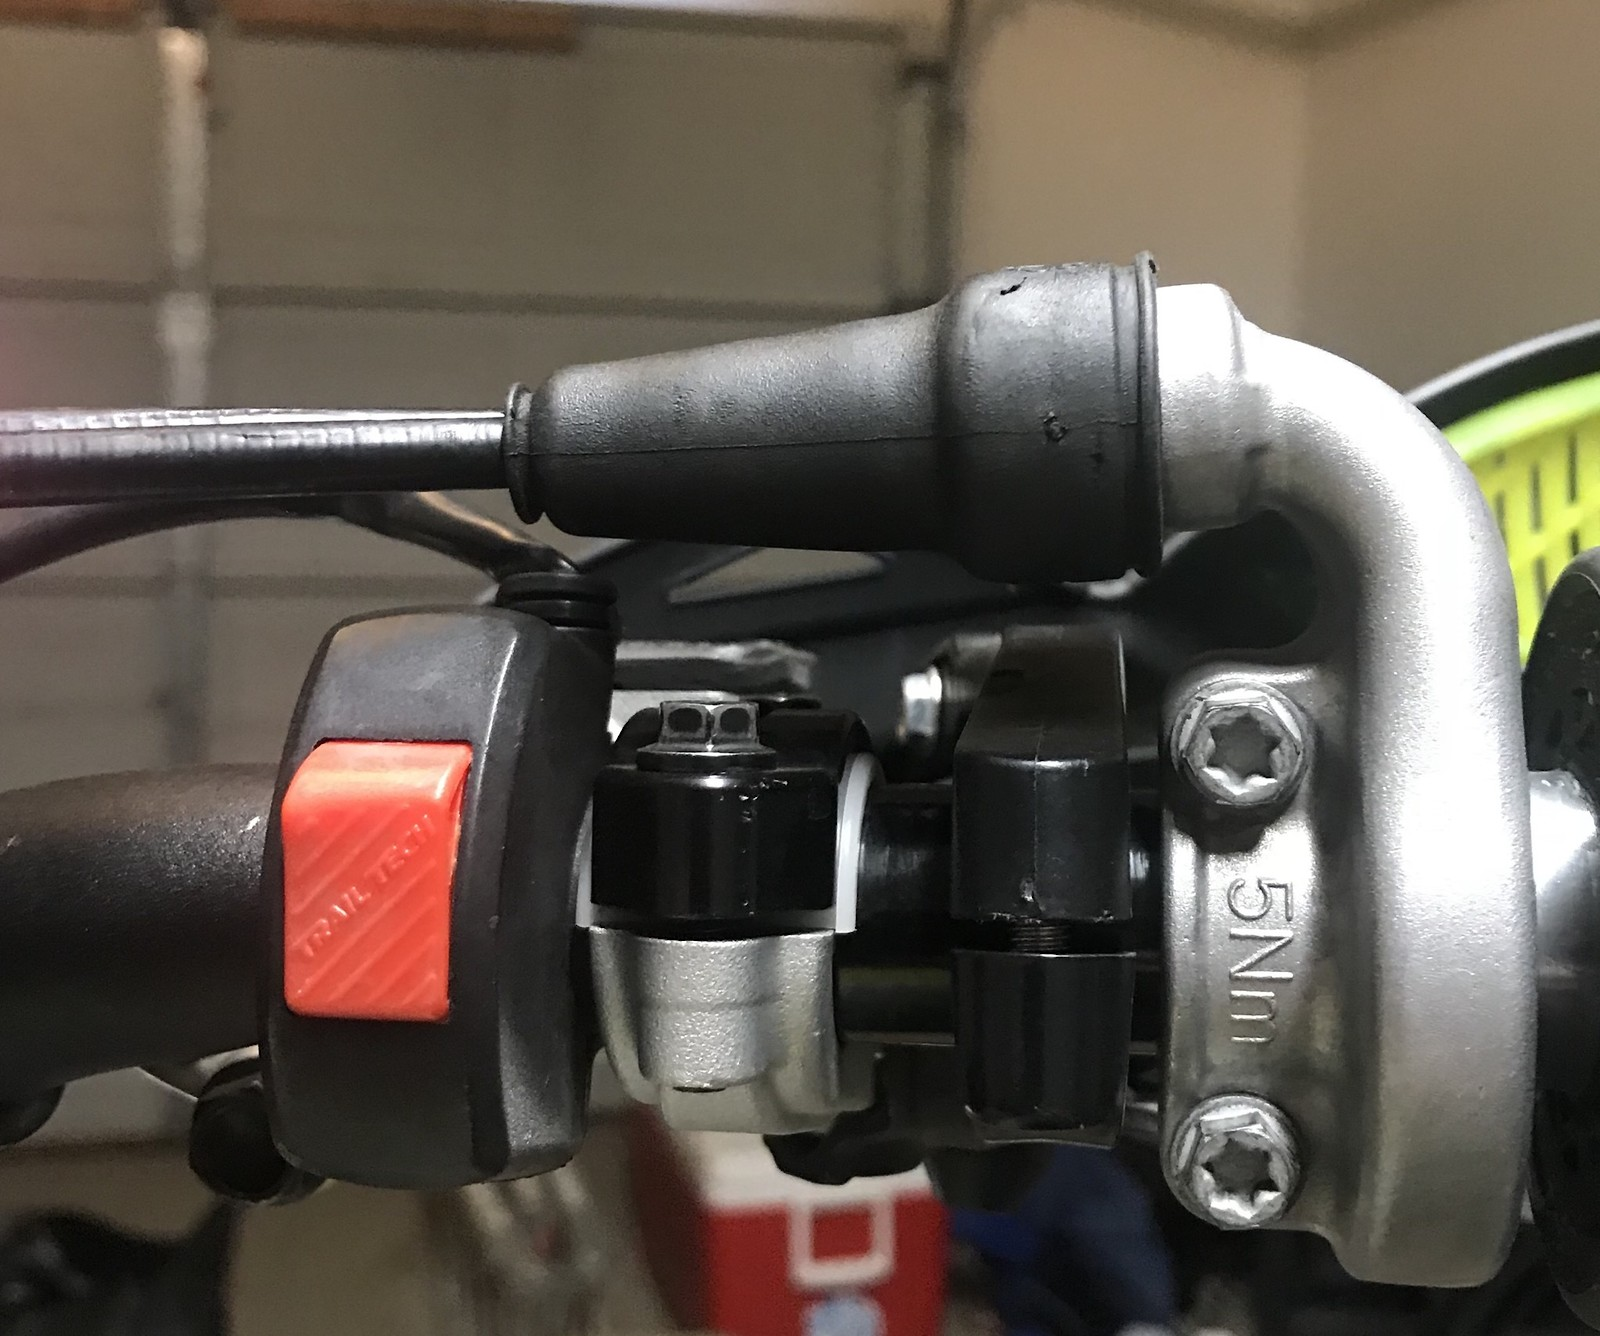 2016 Ktm 250sxf Map Switch Handlebar Tech Help Race Shop 2014 350 Sx F Wiring Diagram Bought A Trailtech Headlight And Hard Wired It In Functions The Same With Two Position Lot Of Guys I Know This Style Did